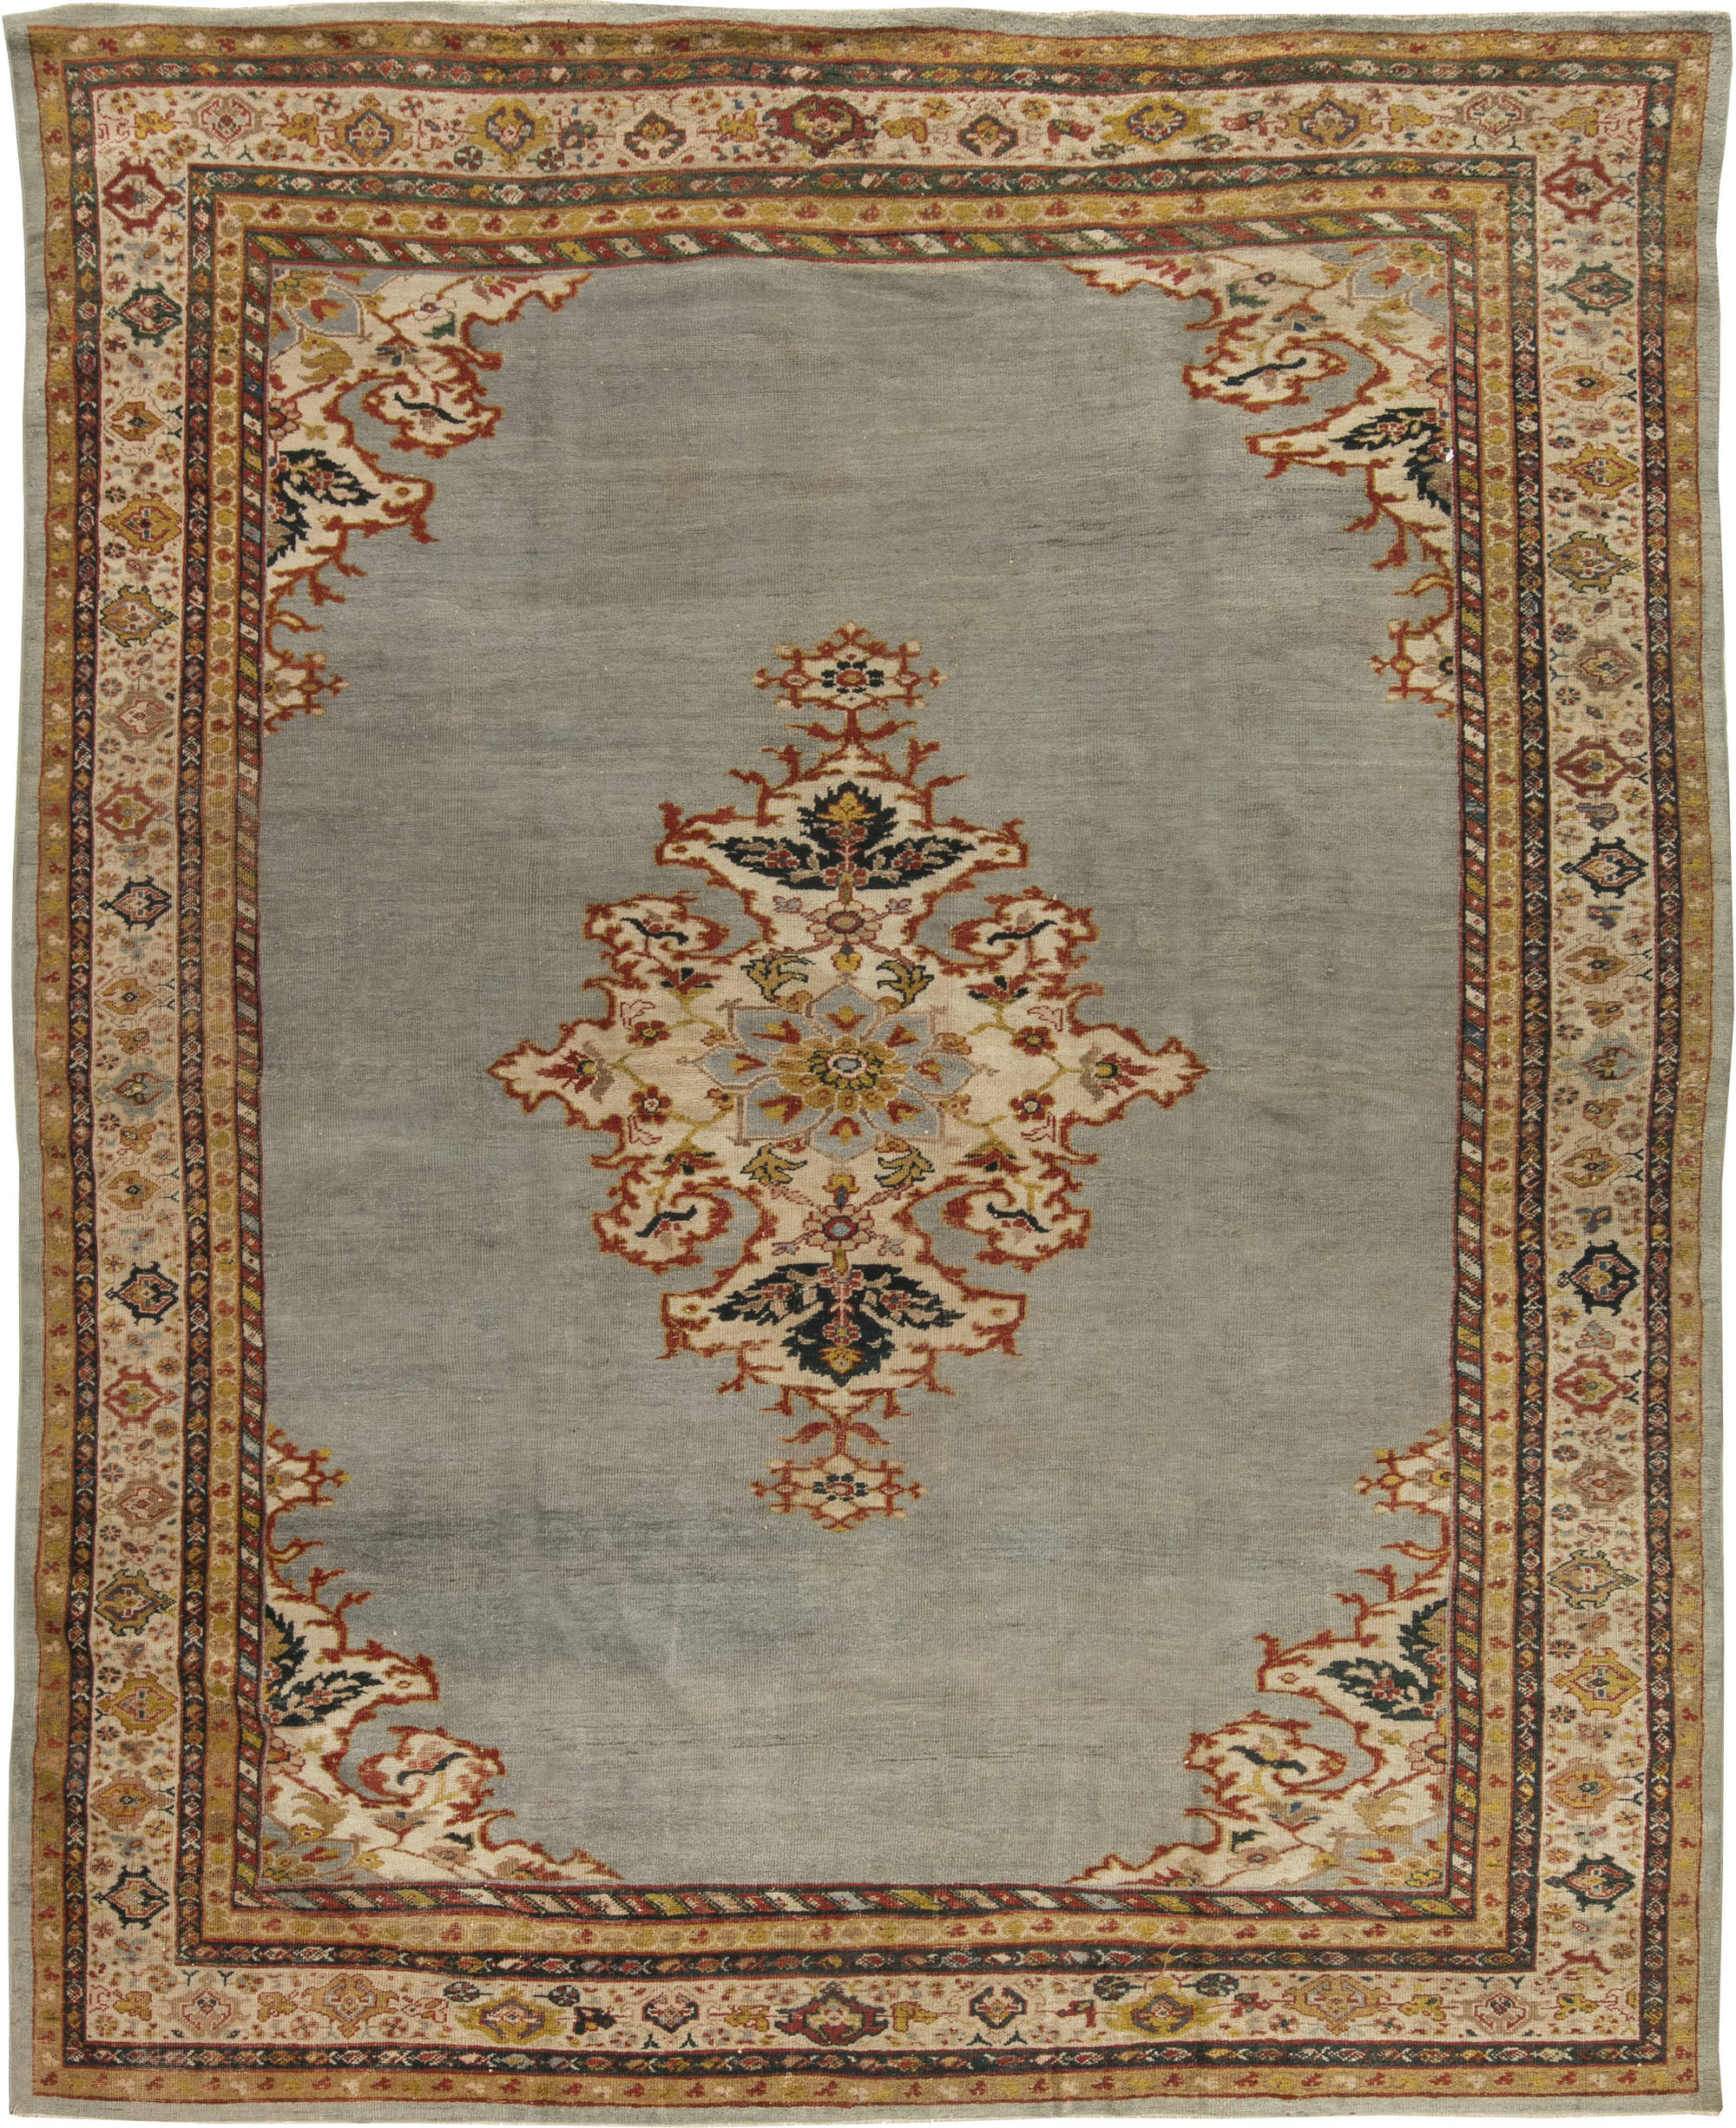 Antique Persian Sultanabad Rug BB6484 By Doris Leslie Blau